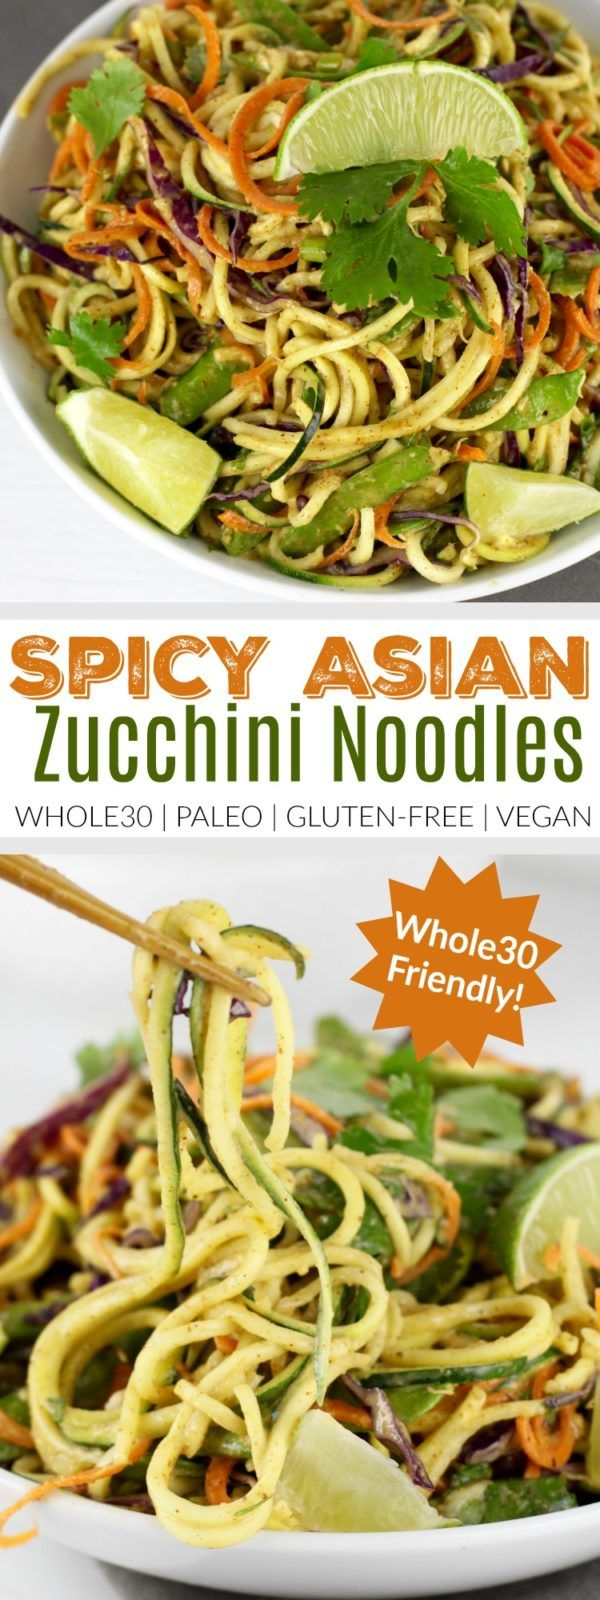 Spicy Asian Zucchini Noodles | Leave out the onion & garlic